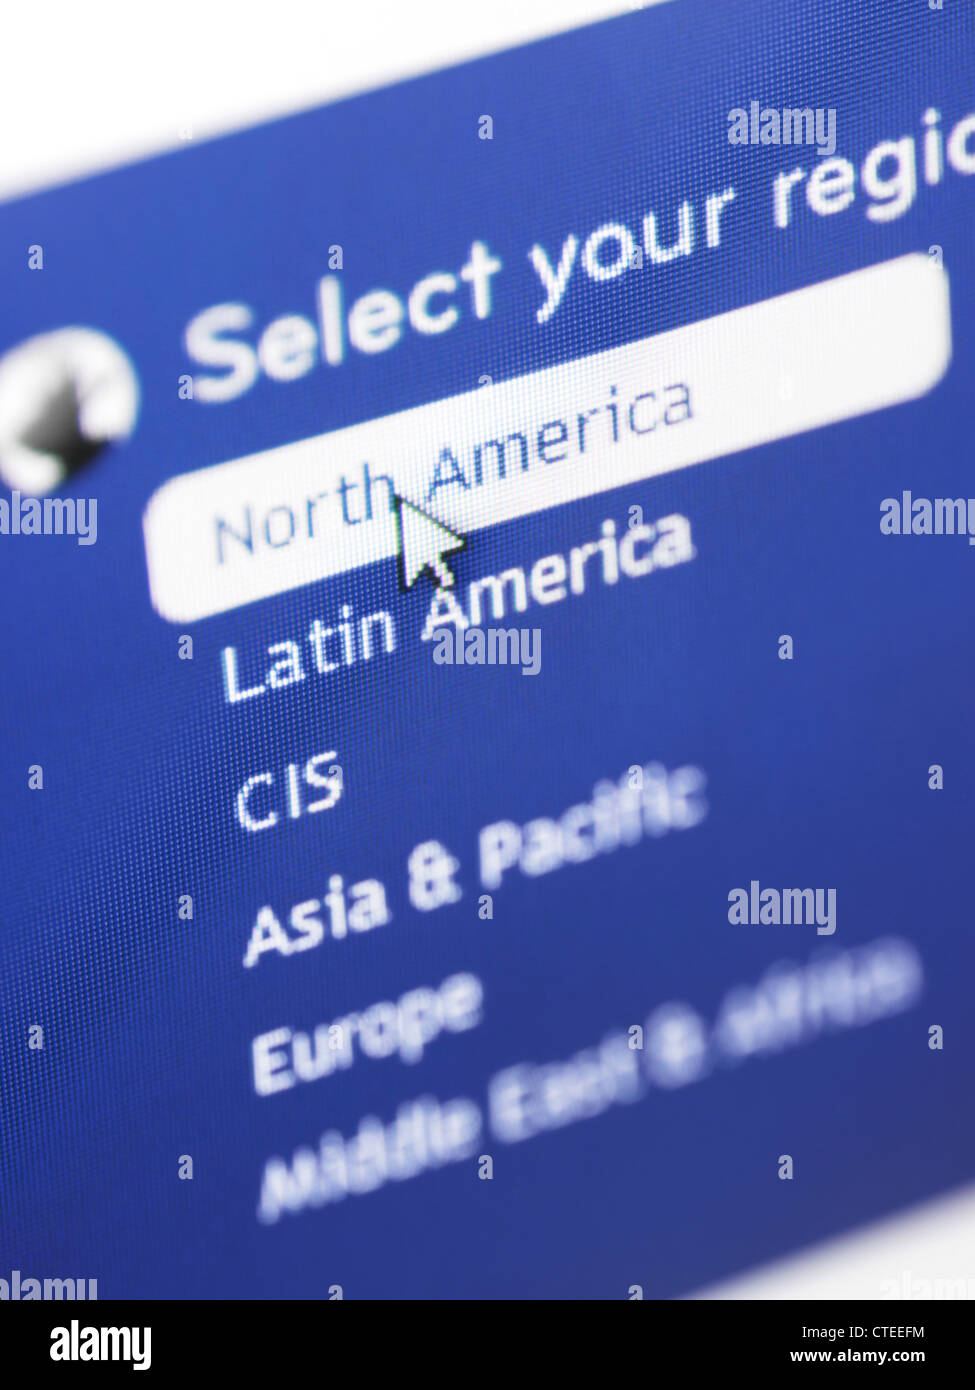 Selecting region from a web site localization menu - Stock Image